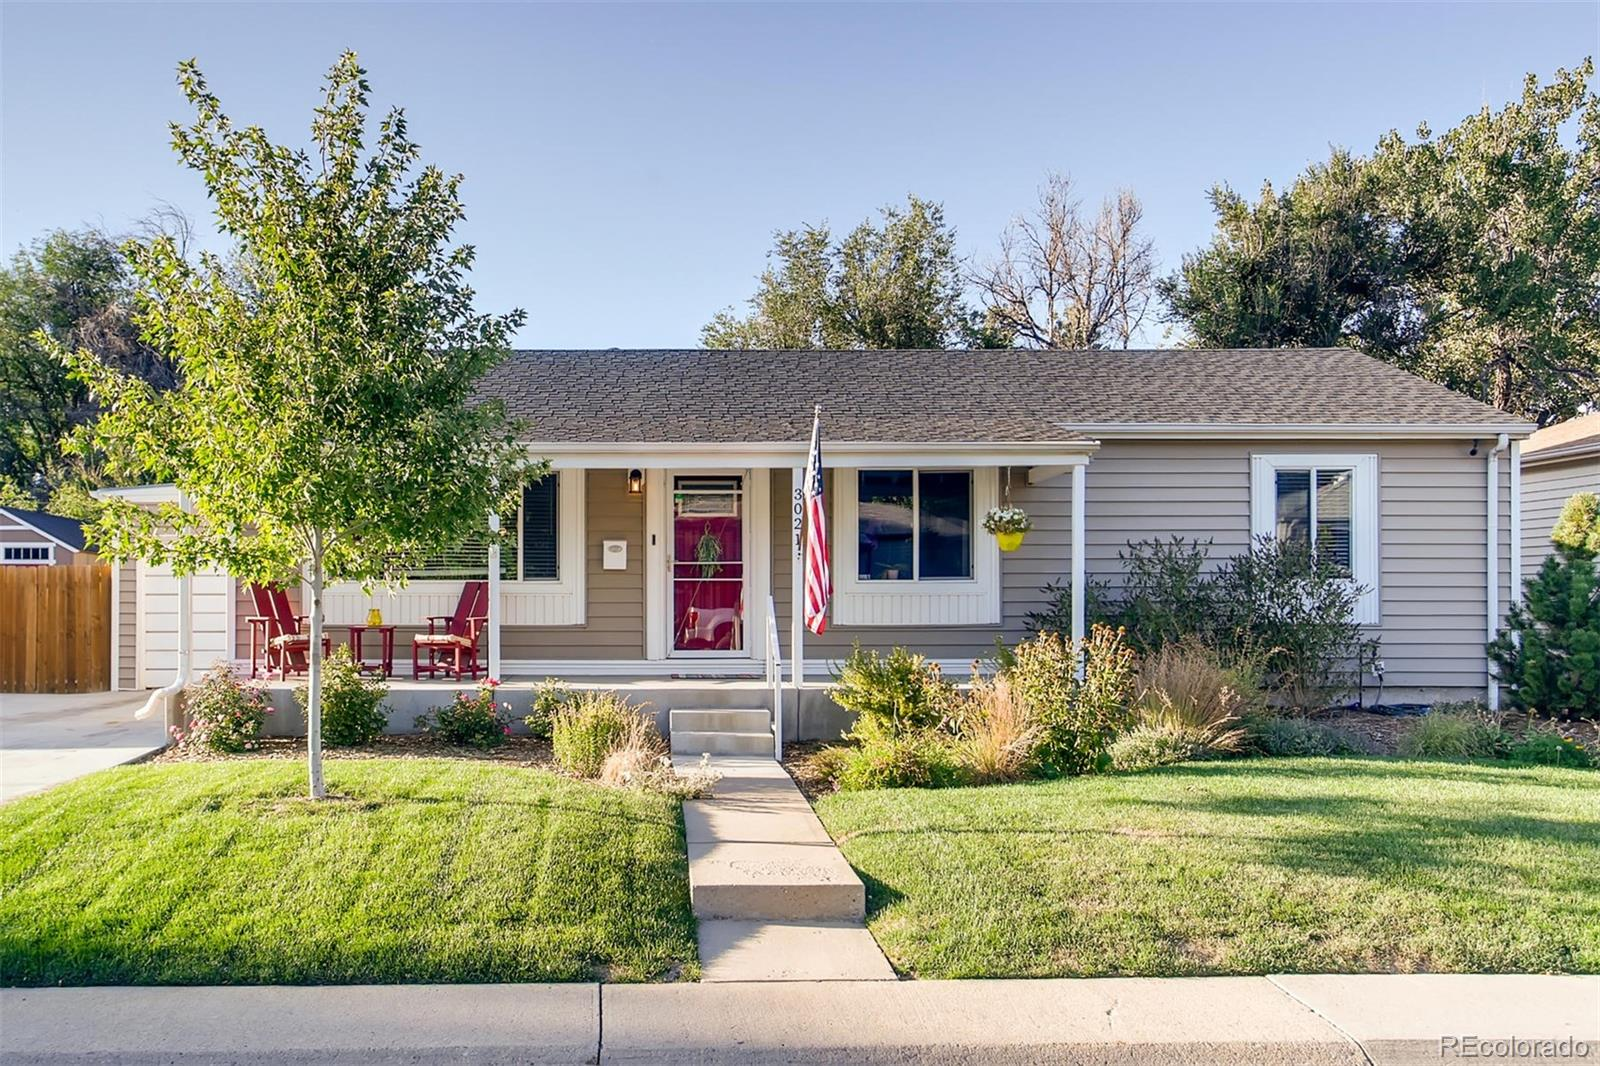 MLS# 9415545 - 2 - 3021 S Holly Place, Denver, CO 80222